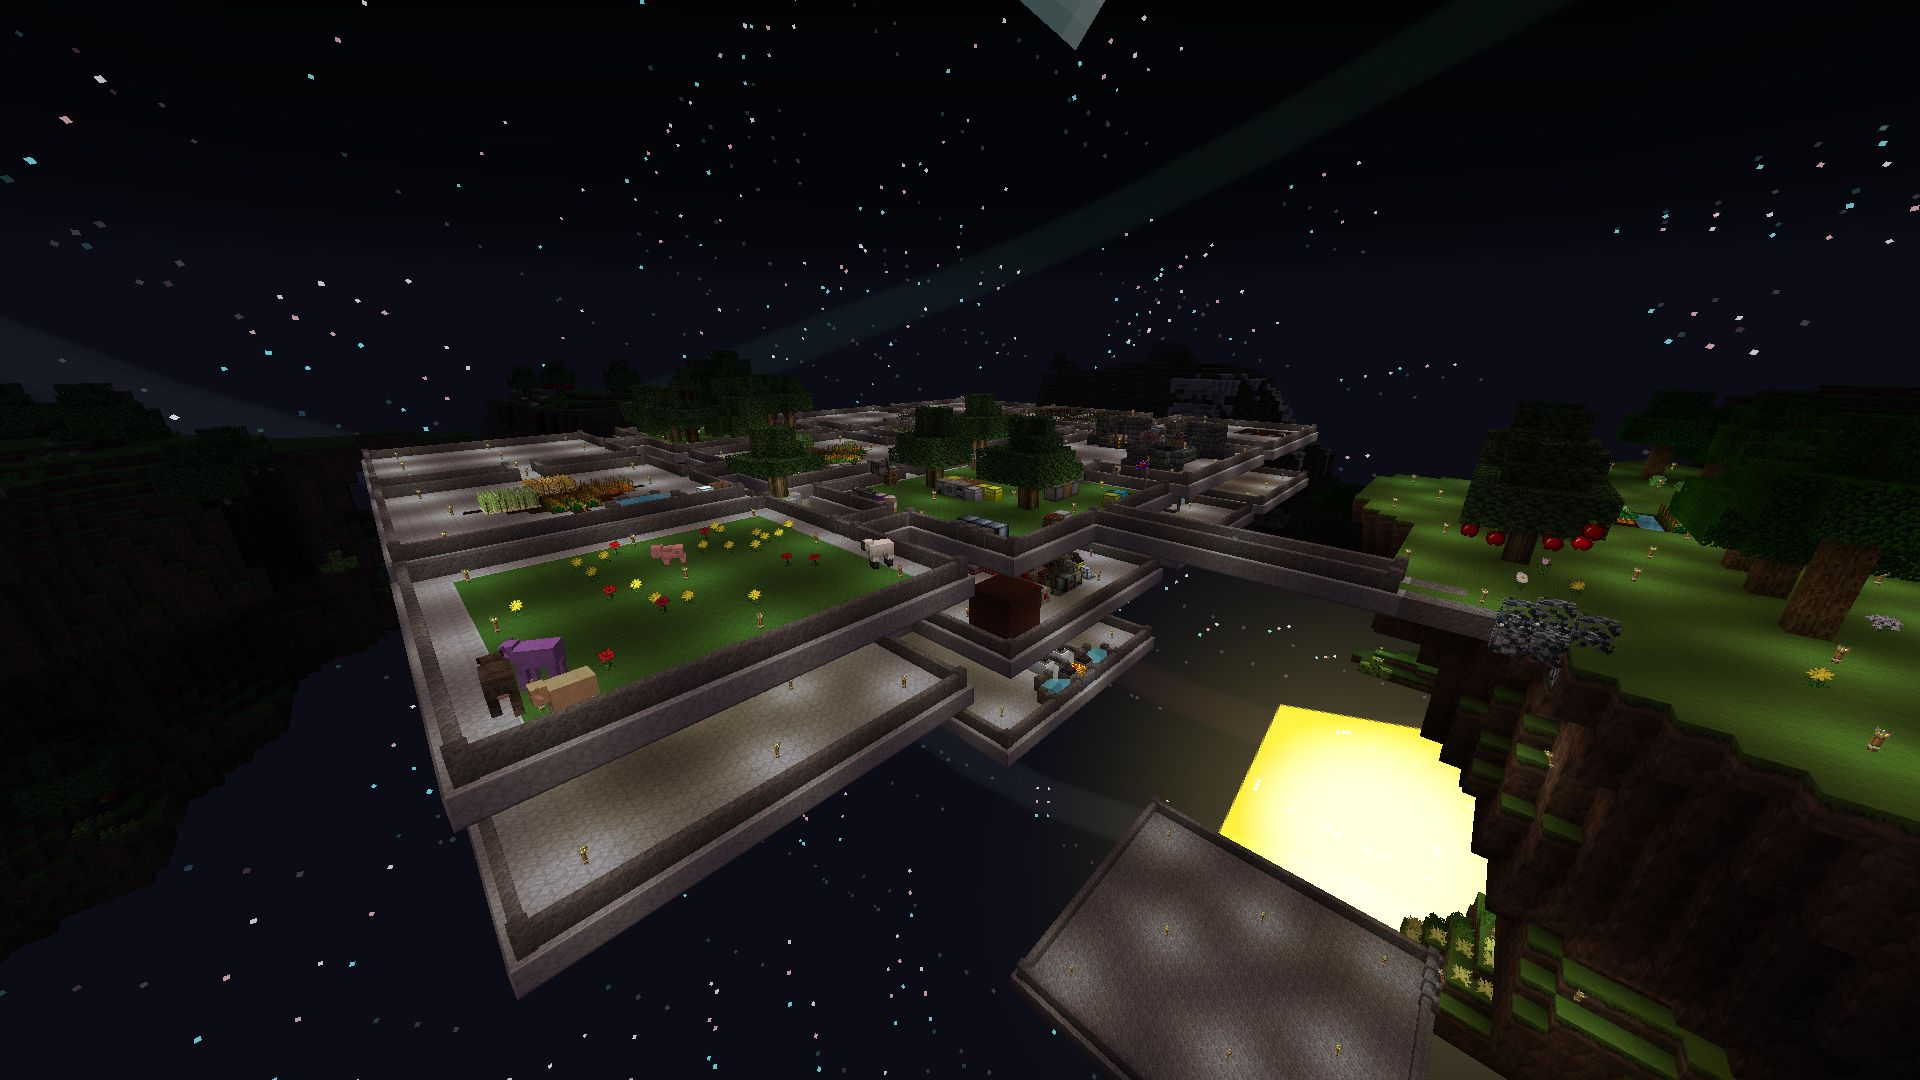 The skyblock at night